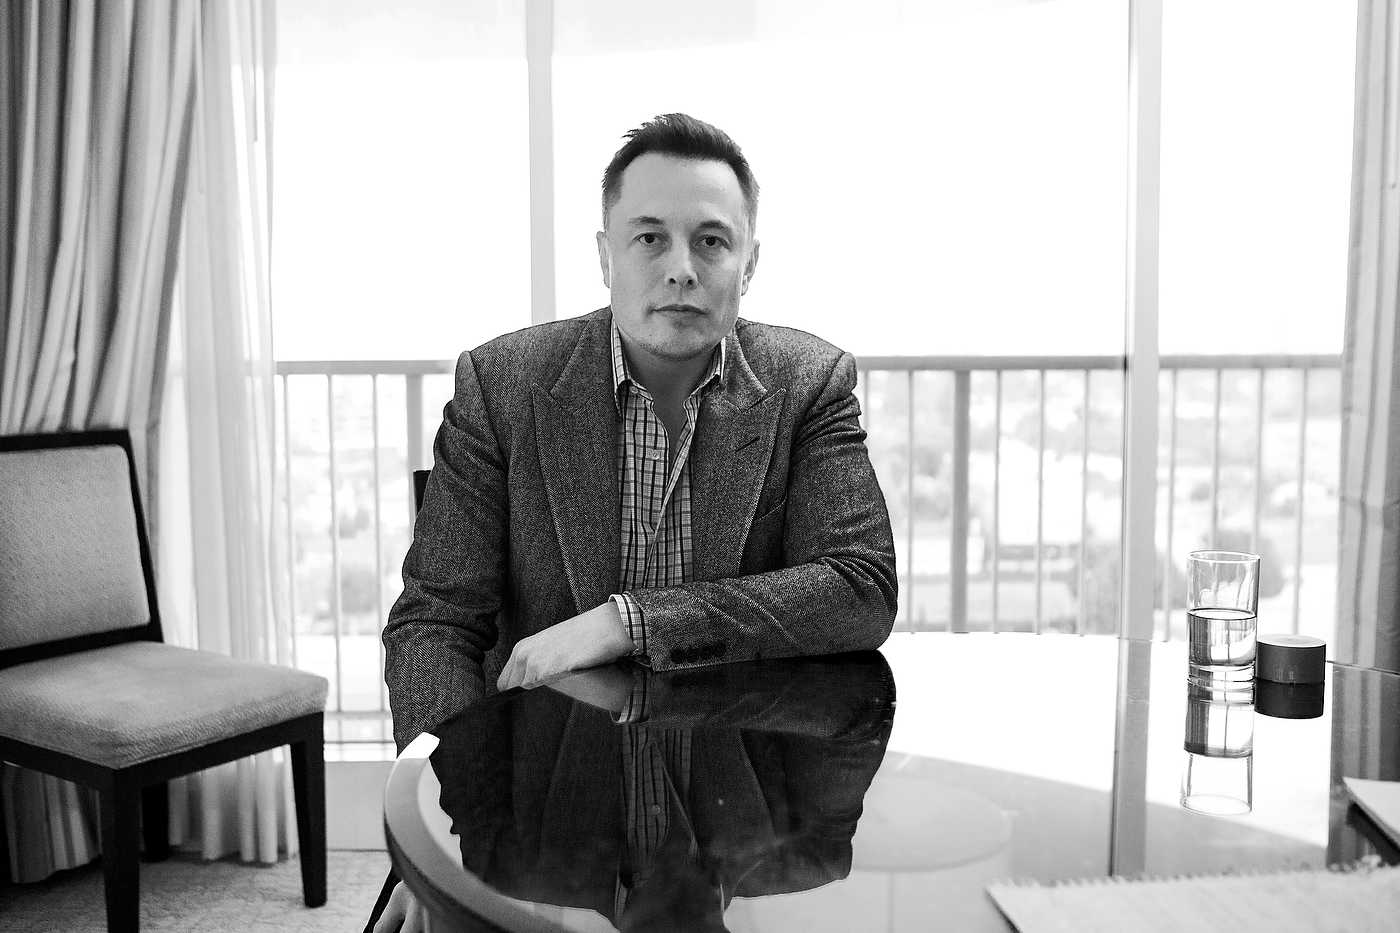 Elon Musk, entrepreneur, Los Angeles, for Focus Magazine.